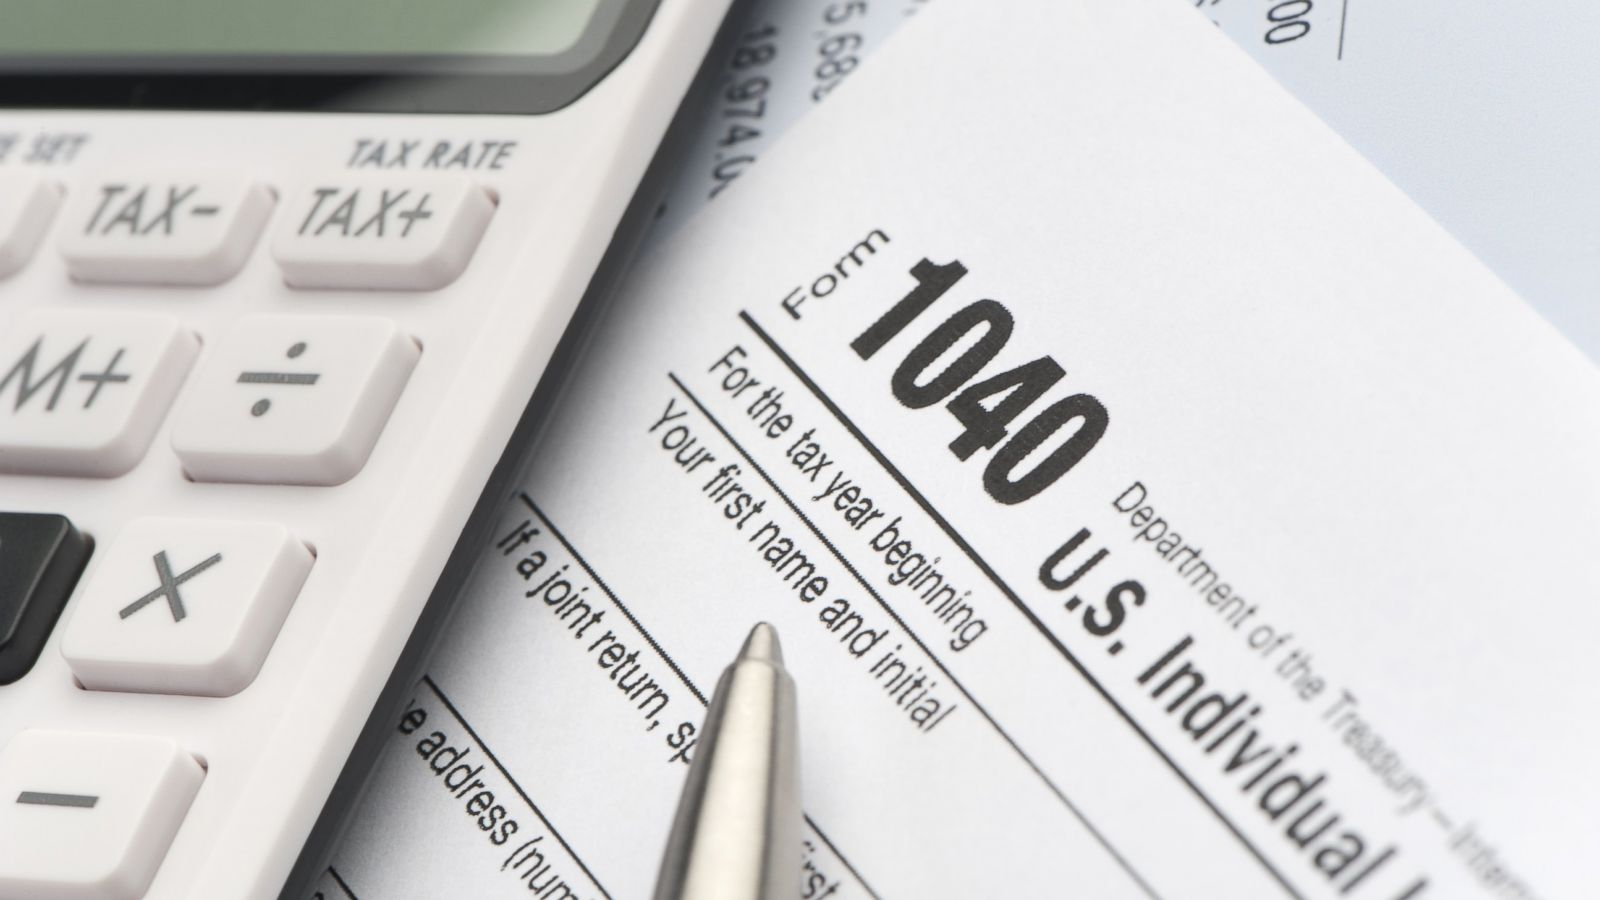 IRS Outage Could Cause Tax Refund Delays - ABC News